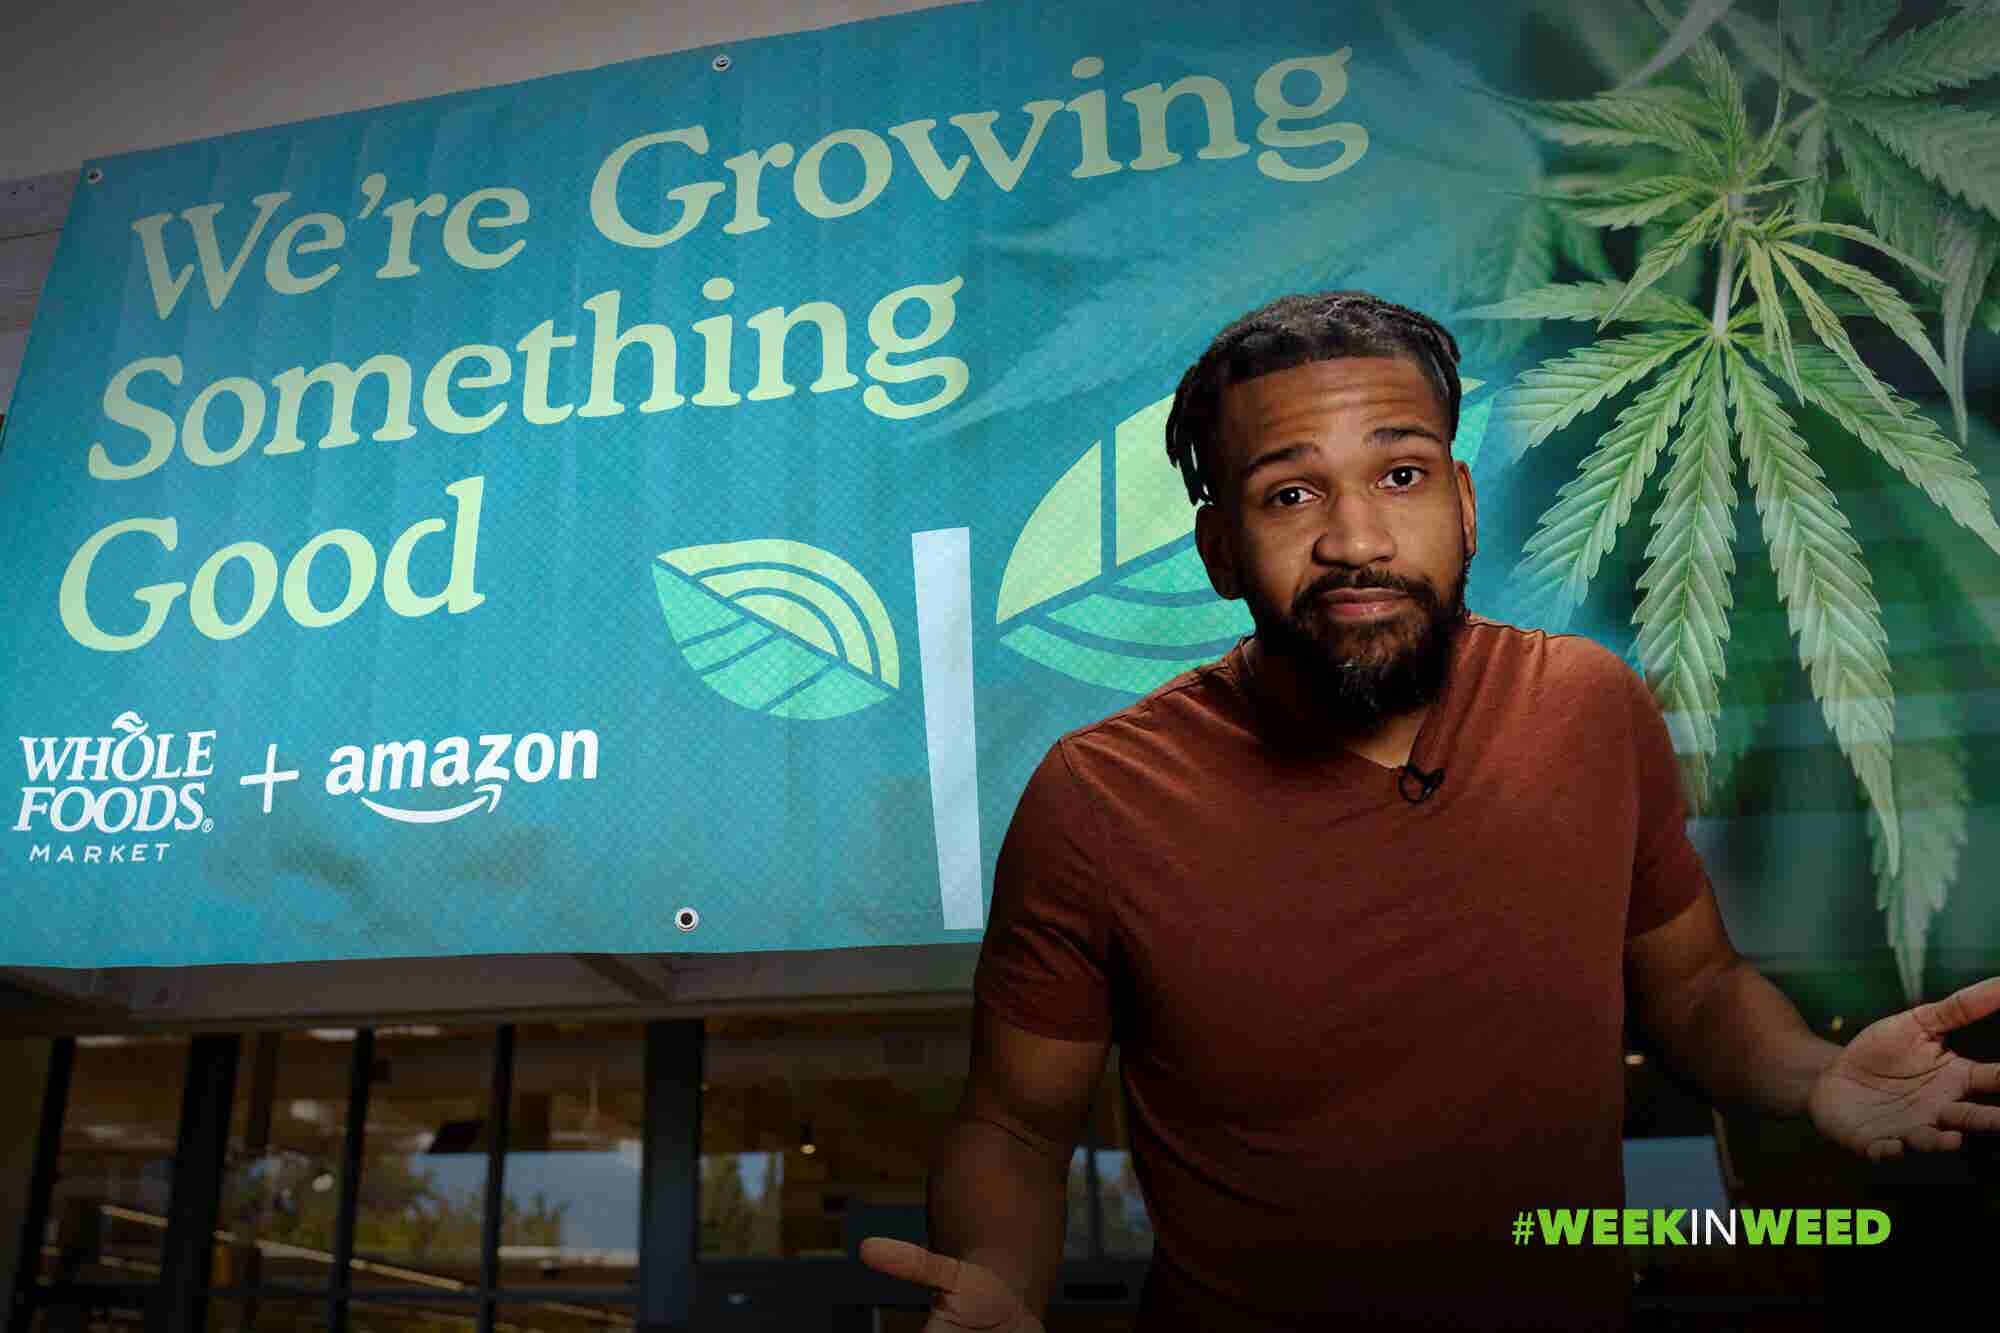 This Week in Weed: Whole Foods Will Sell Weed! (One Day...)